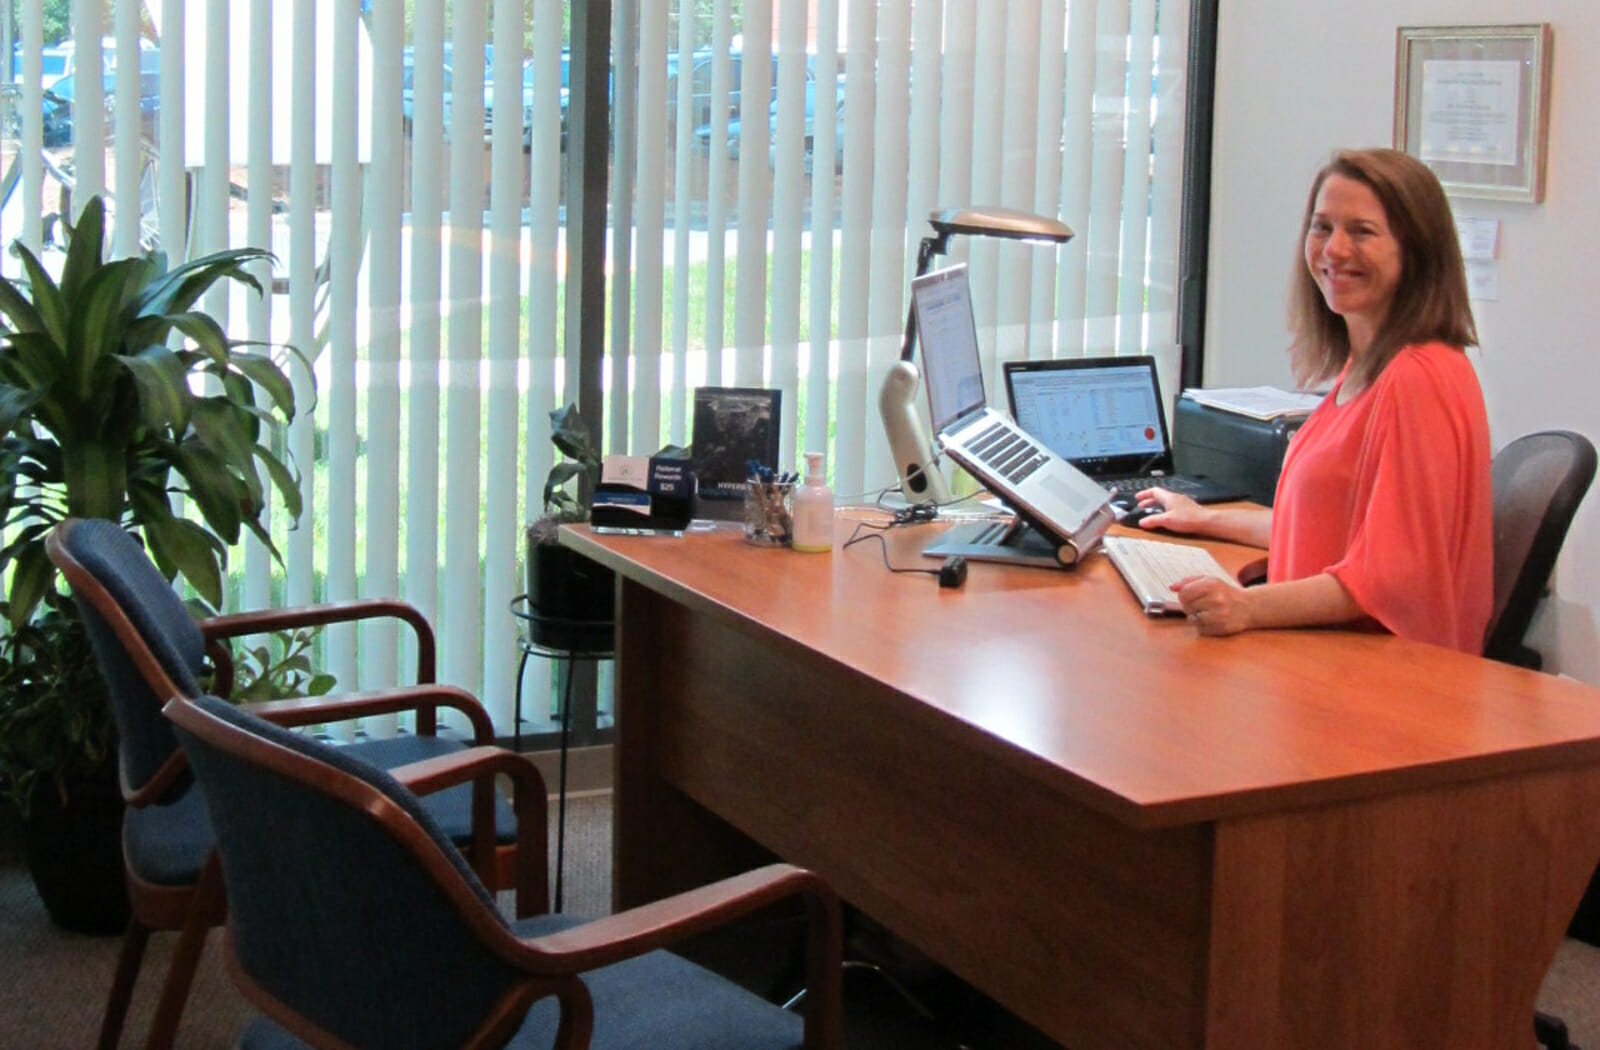 Dr. Melonni Dooley at her desk Welcomes New Patients for Naturopathic Medicine Therapies